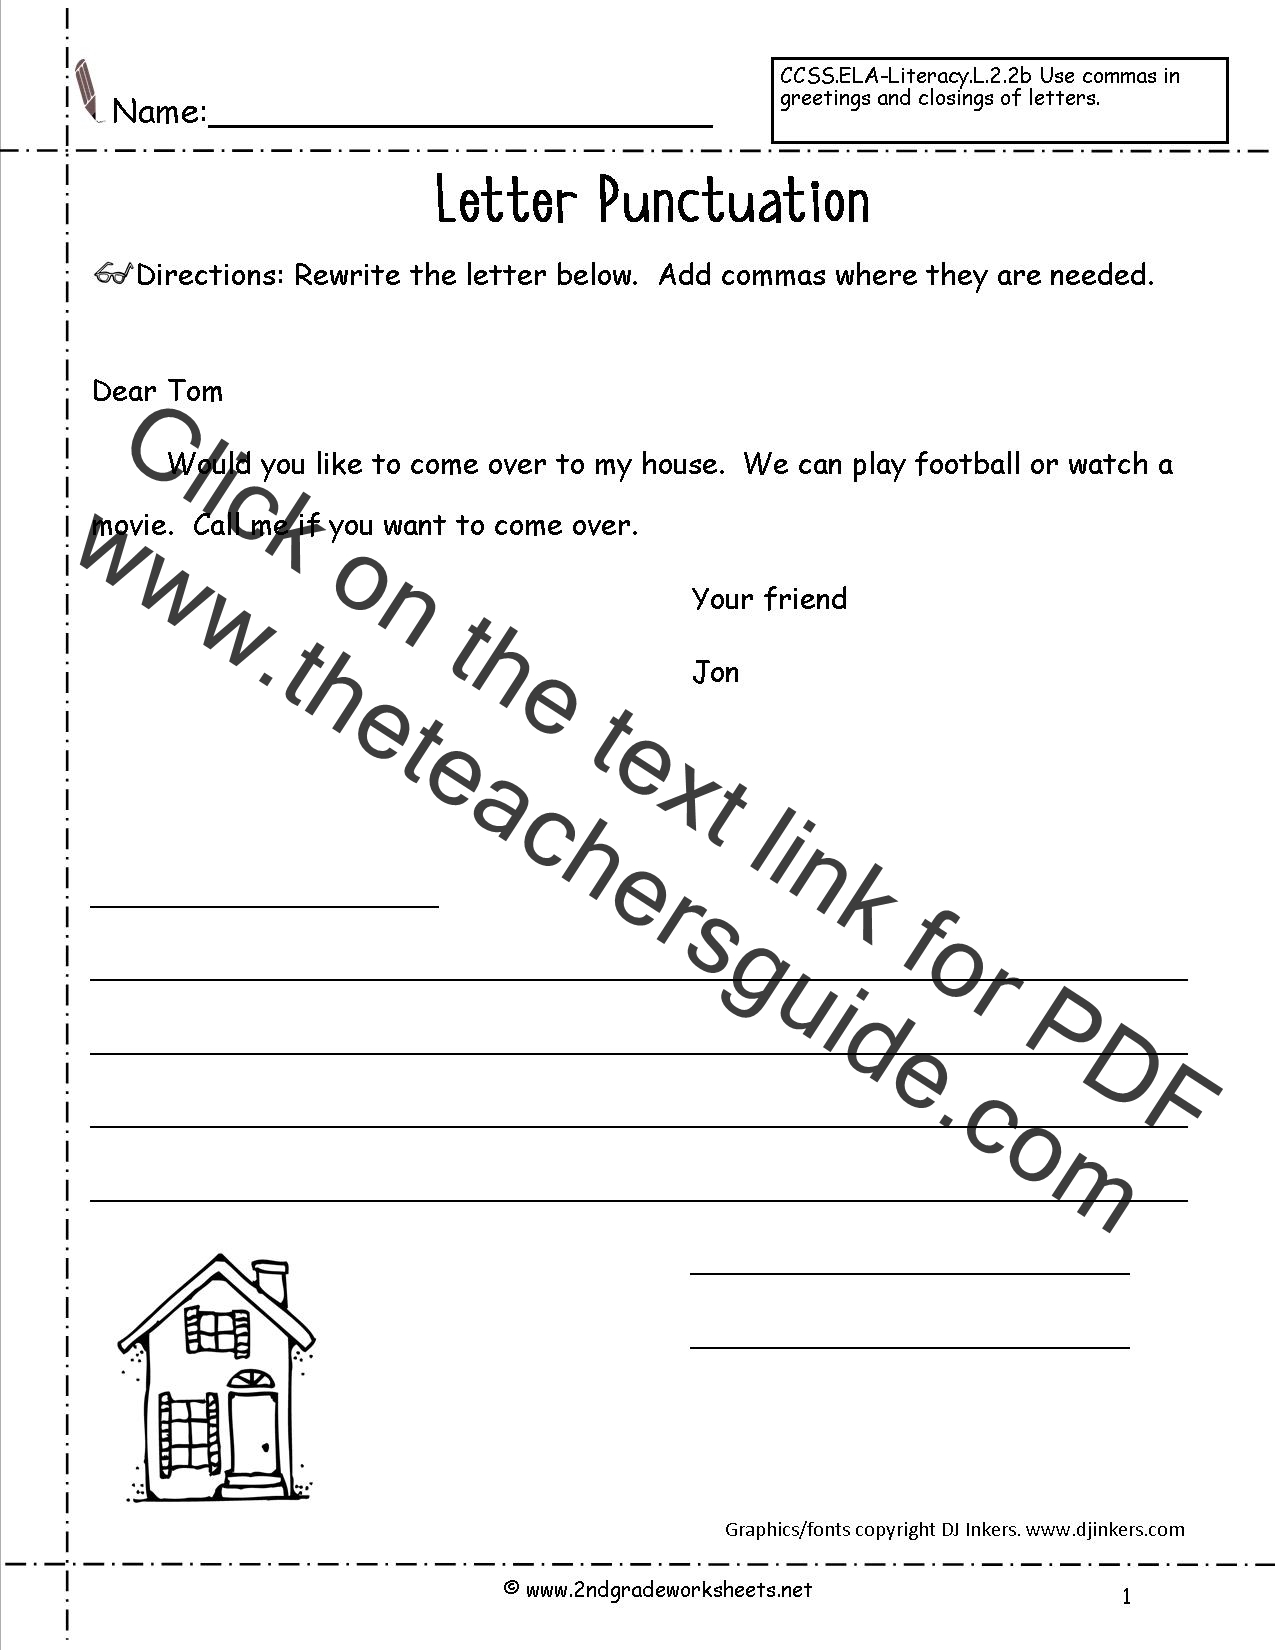 Letters and parts of a letter worksheet friendly letter punctuation m4hsunfo